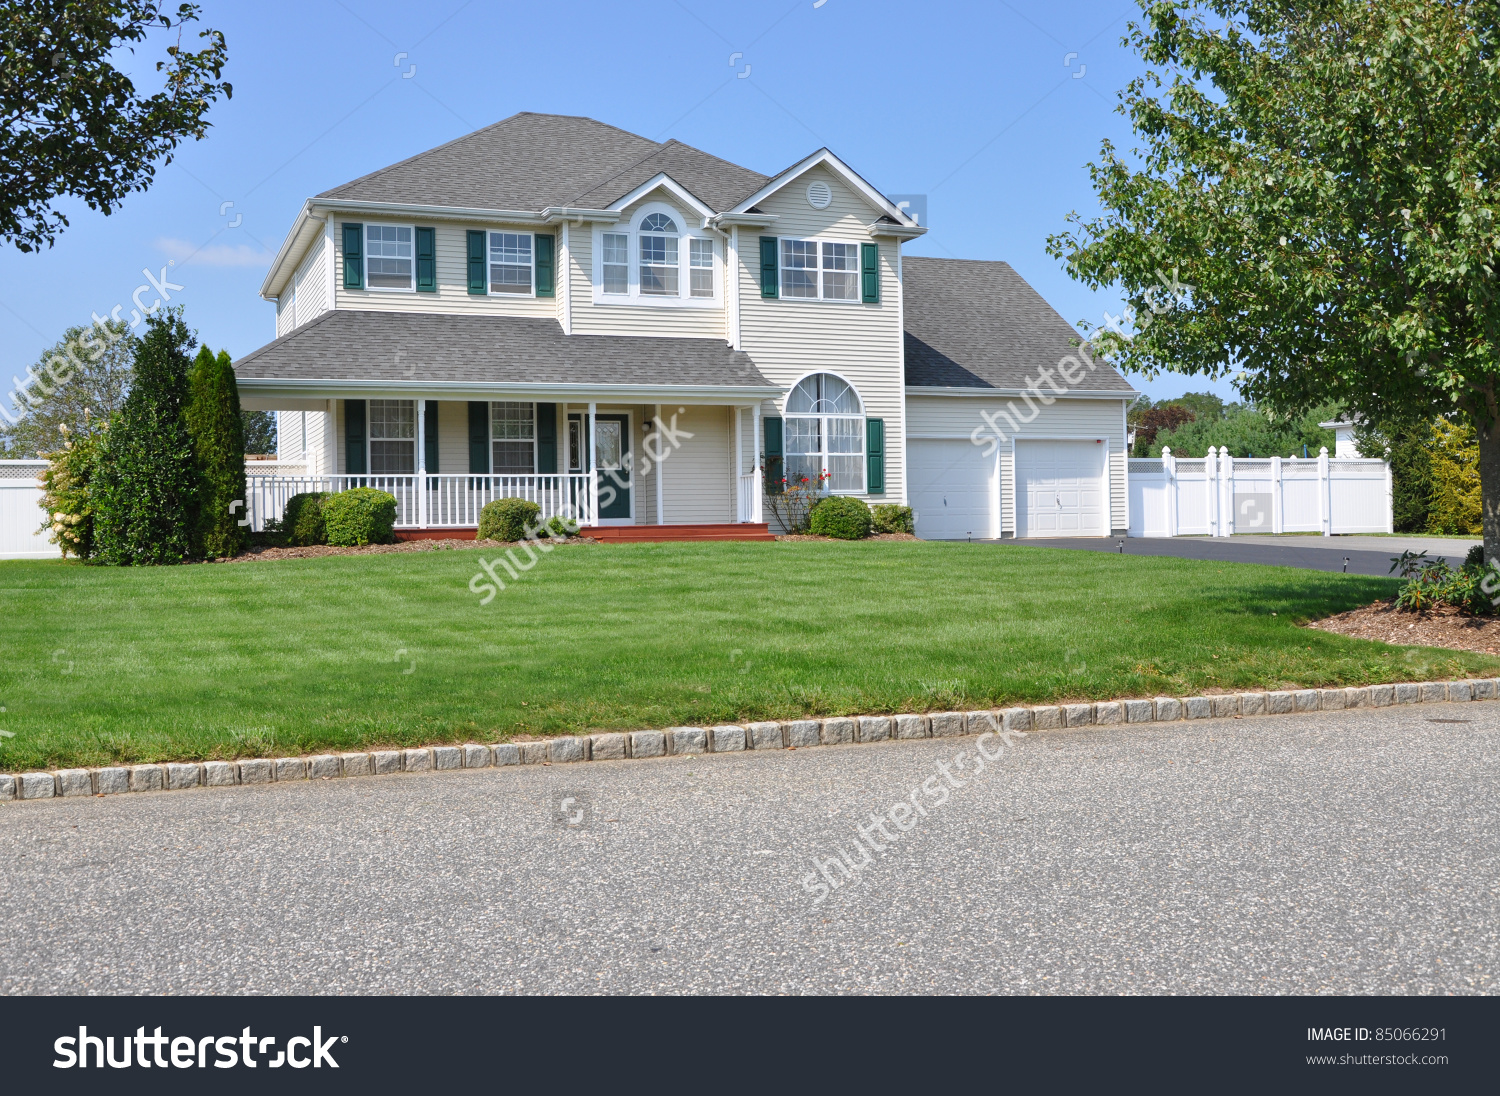 Suburban Two Story Double Garage Luxury Home Sunny Day Residential.